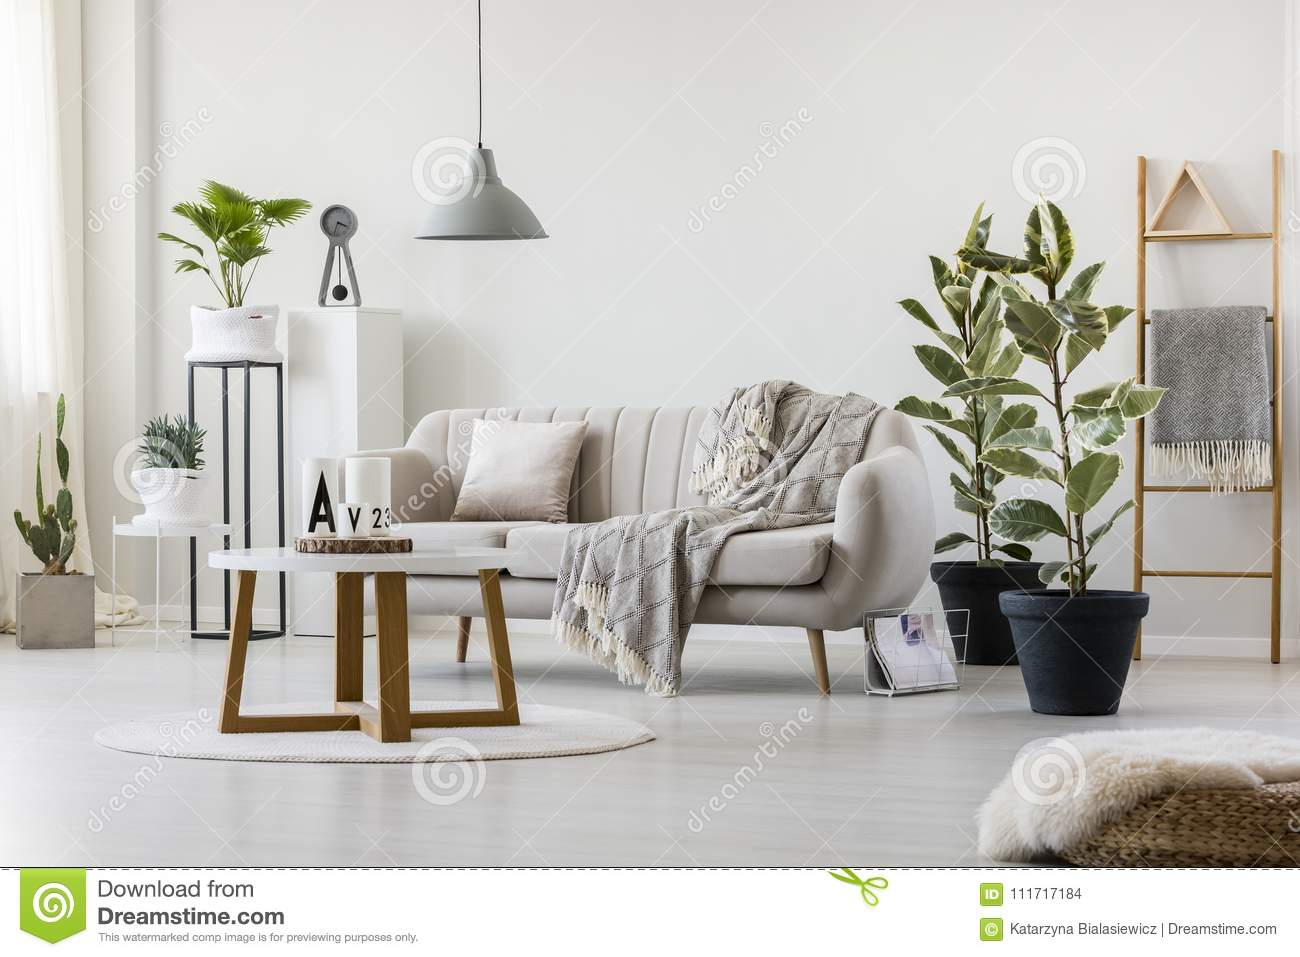 Living Room With Elegant Couch Stock Photo - Image of furniture ...